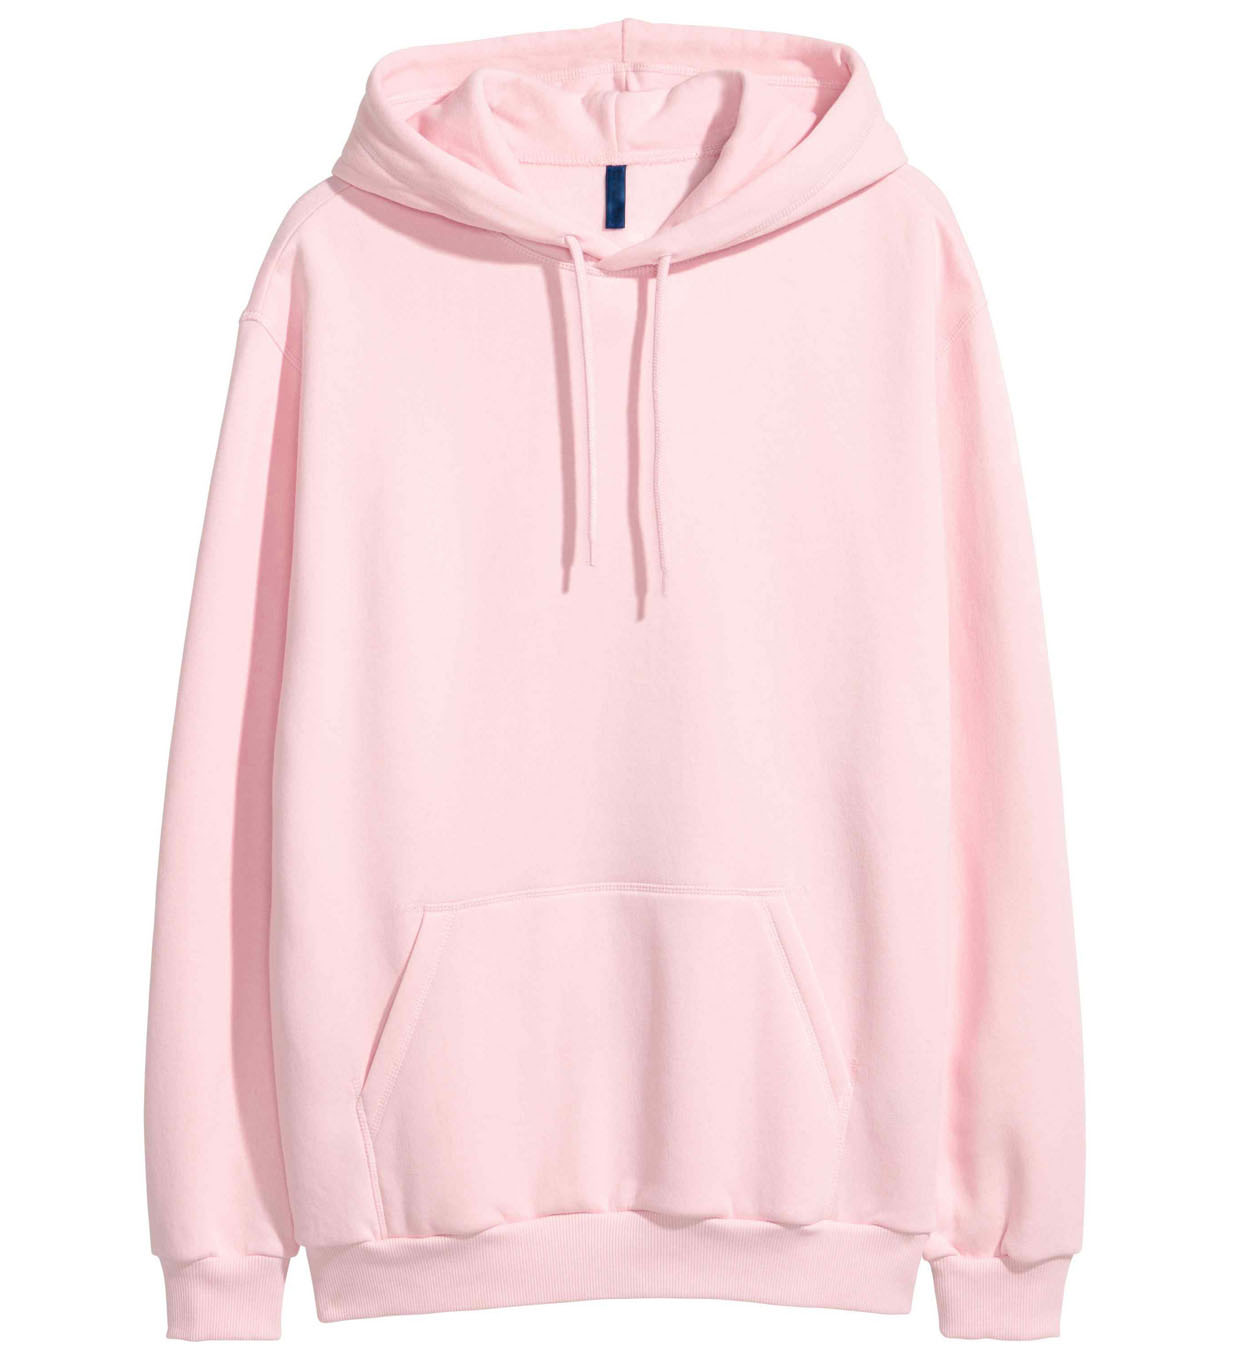 Women Solid Color Hoodies New Black Gray Pink Red Blue Fleece Style Pullovers Autumn Winter Fitness Sweatshirt Hooded S-XXL 2018